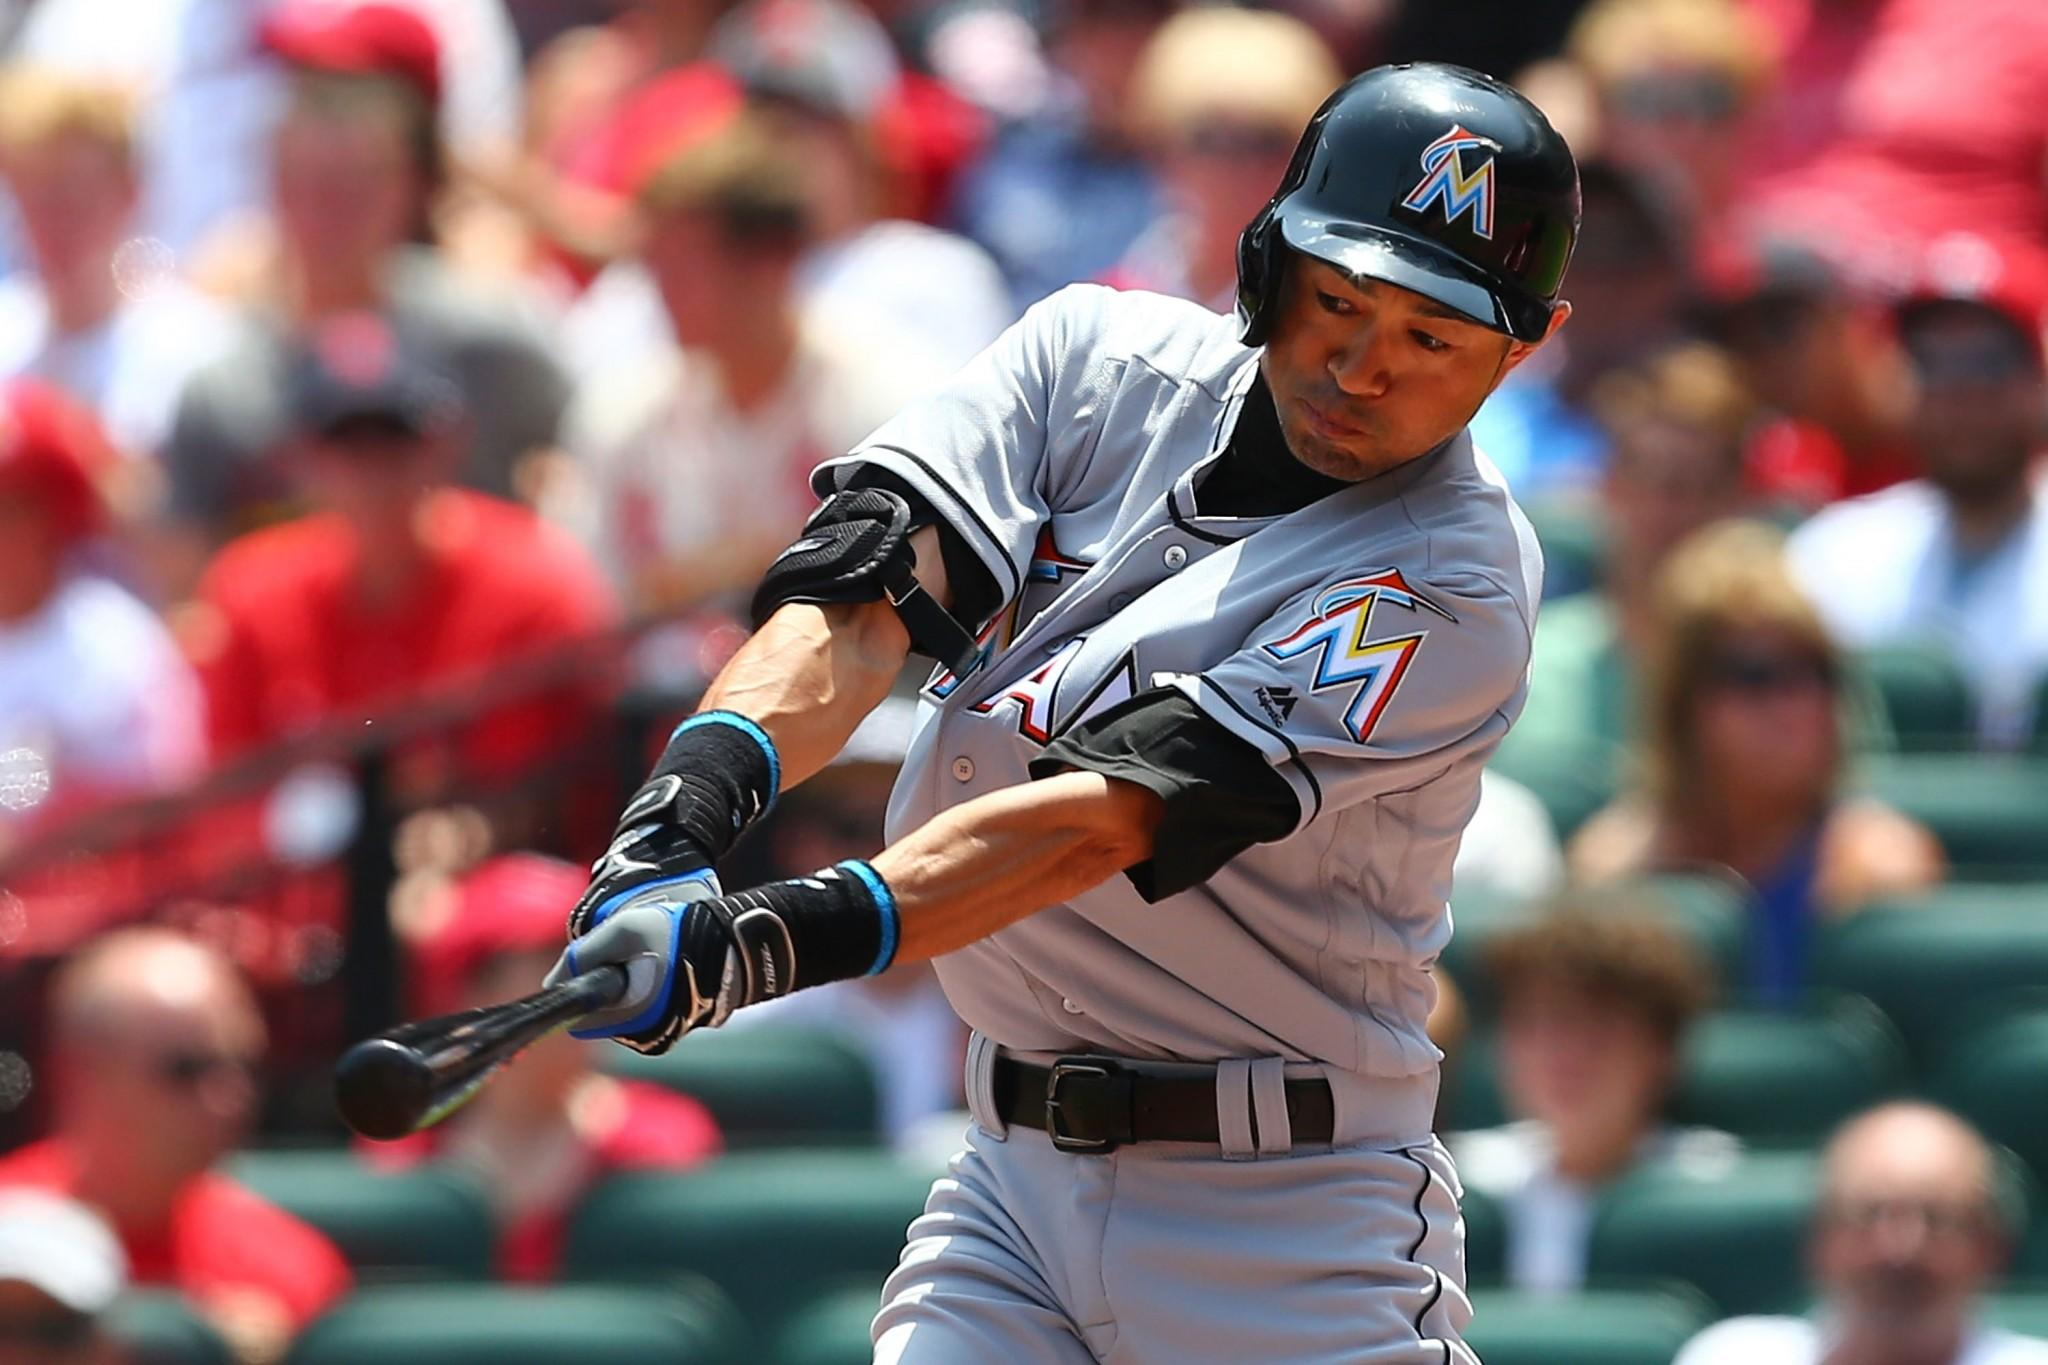 Ichiro finds a clever way to put Pete Rose in his place